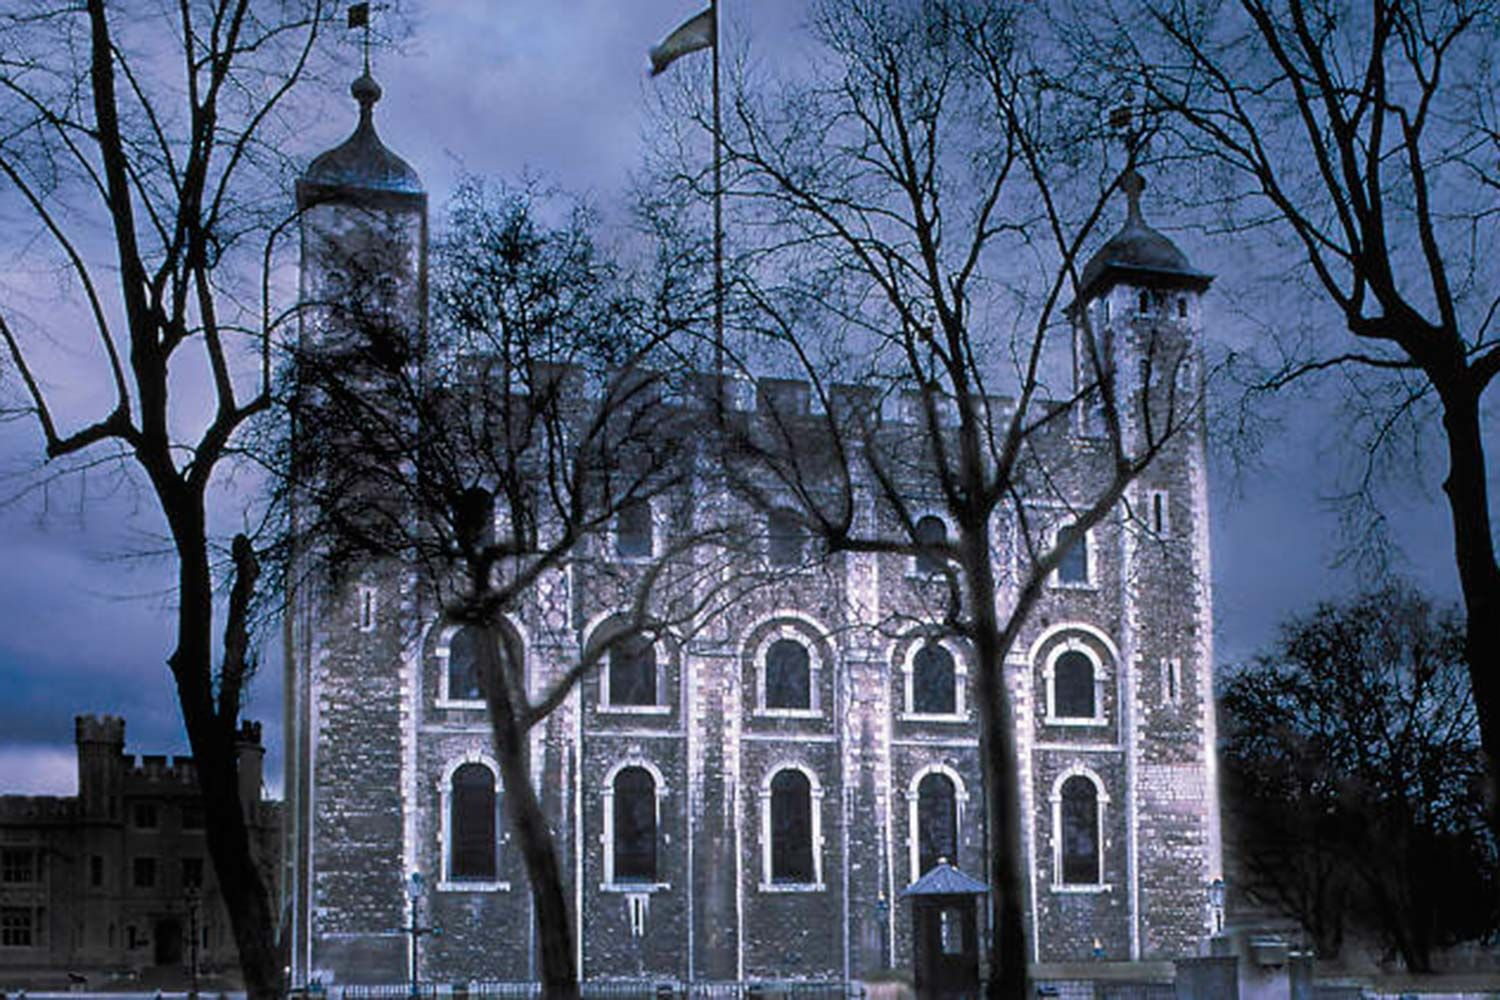 Spooky tower of london Halloween event ... trick or treat your date?  http://www.datemy.co.uk/blog/v/10-spooky-date-ideas-for-this-halloween-in-london/107